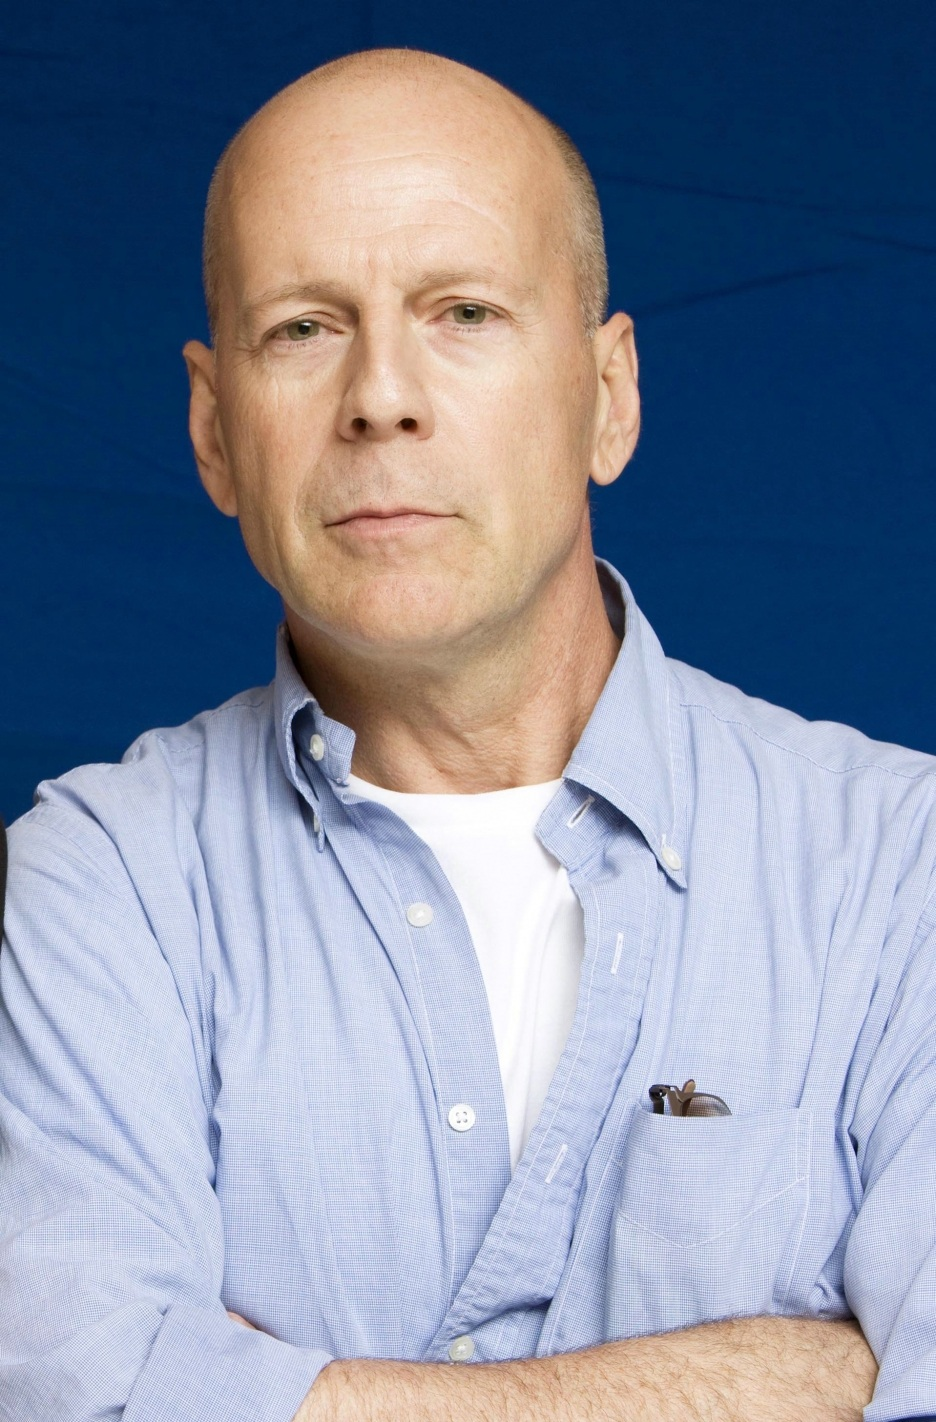 Bruce Willis Hd Wallpapers High Definition Free